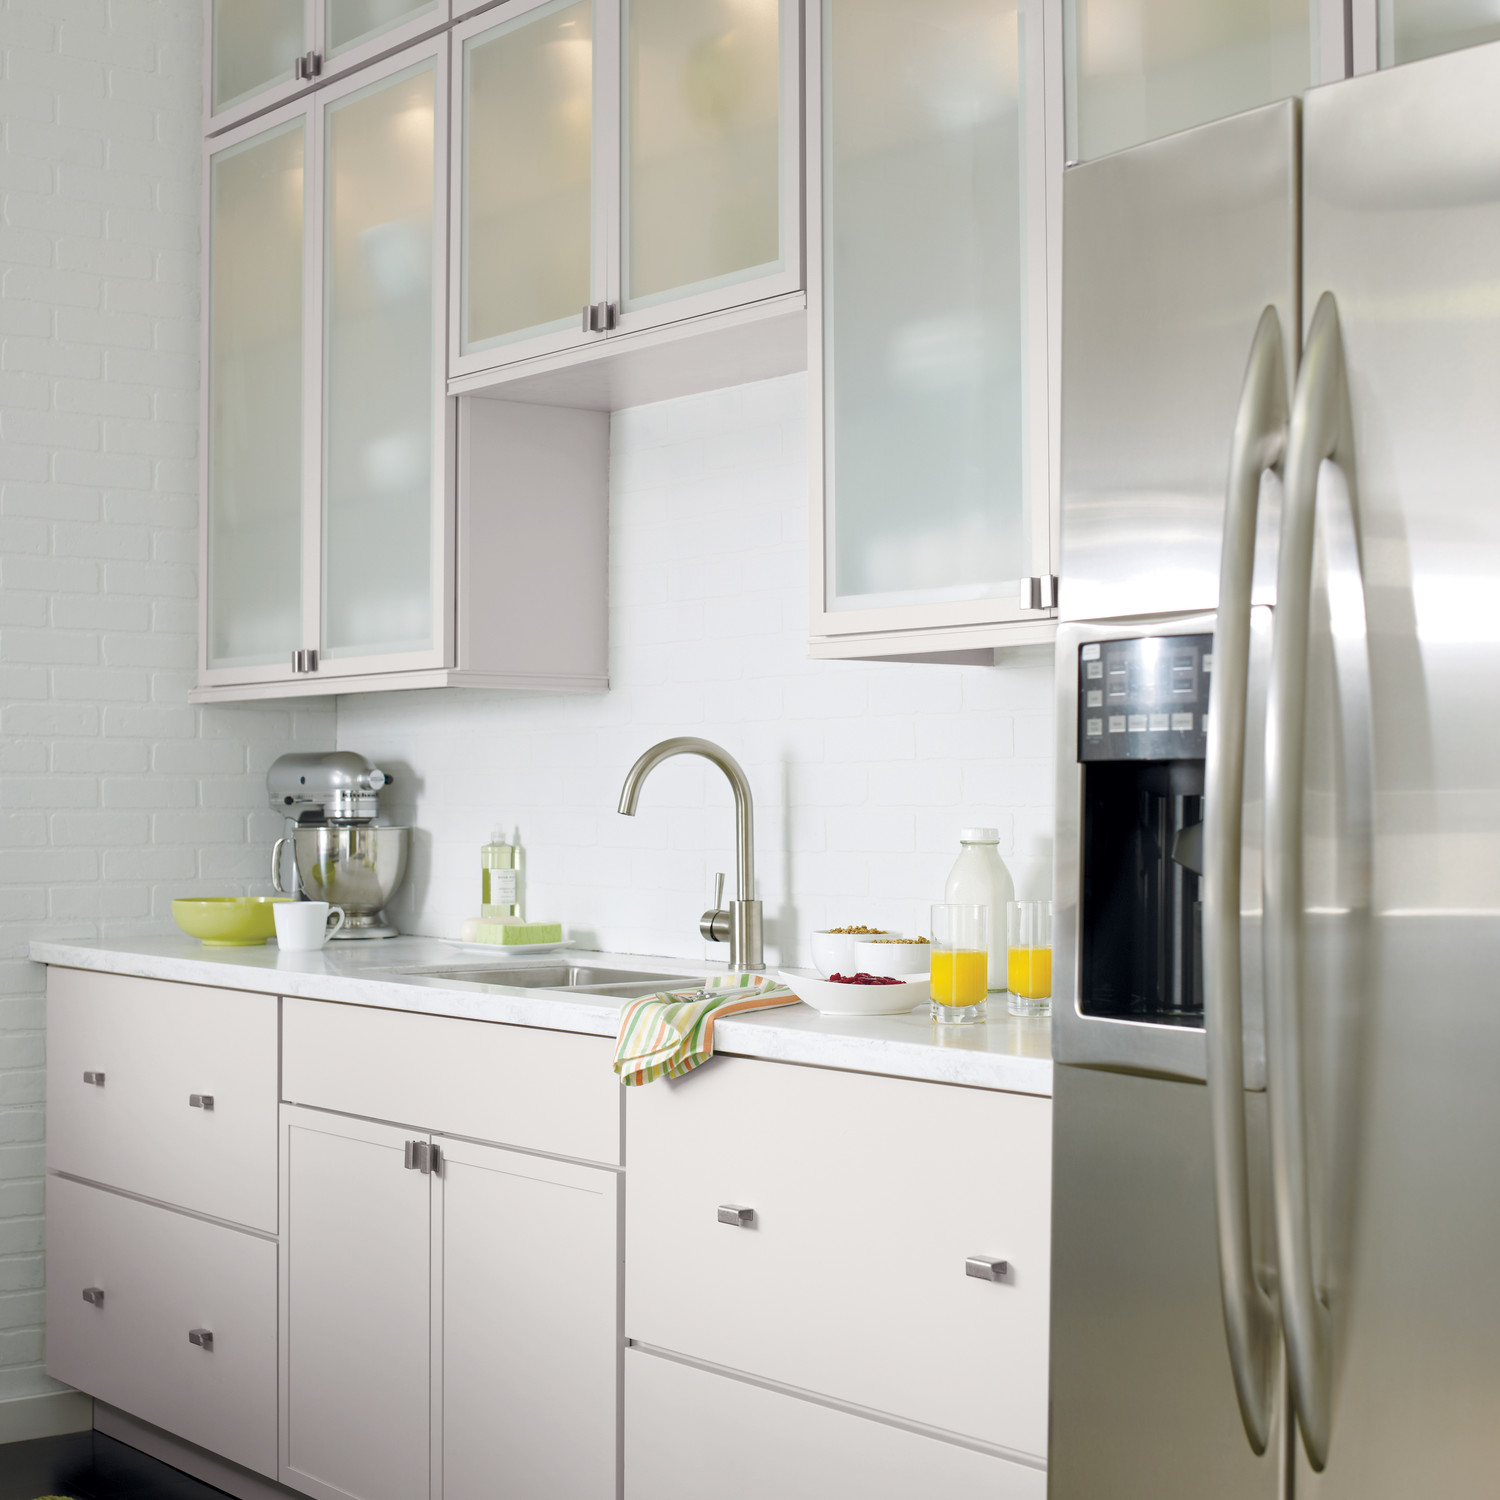 6 Common Kitchen Remodeling Myths, Debunked (Plus, One Amazing Fact ...